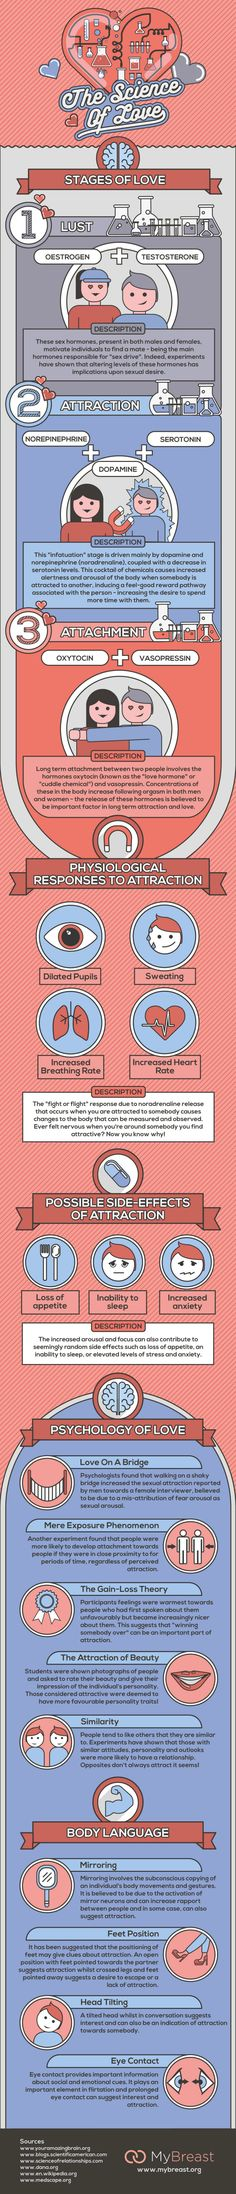 Is love a mystery to you? Now you can discover the fascinating science behind life's most powerful emotion with The Science of Love Infographic.